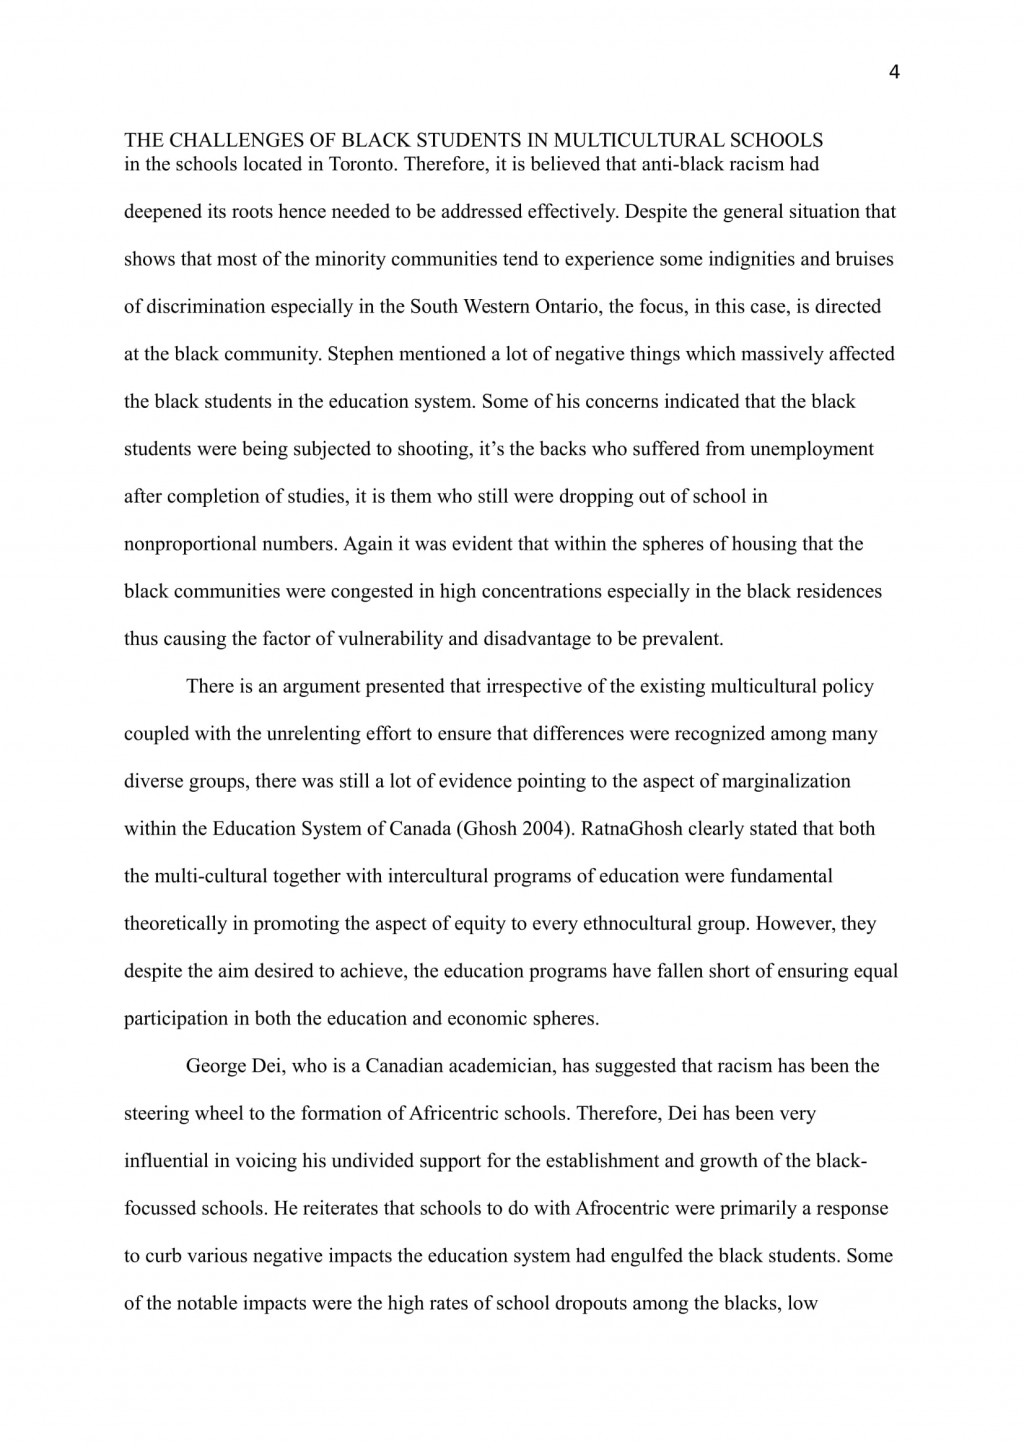 002 Essay Example Goals In Life Goal Students Drop Out High School Essays Personal Rare For Mba Career Future Large